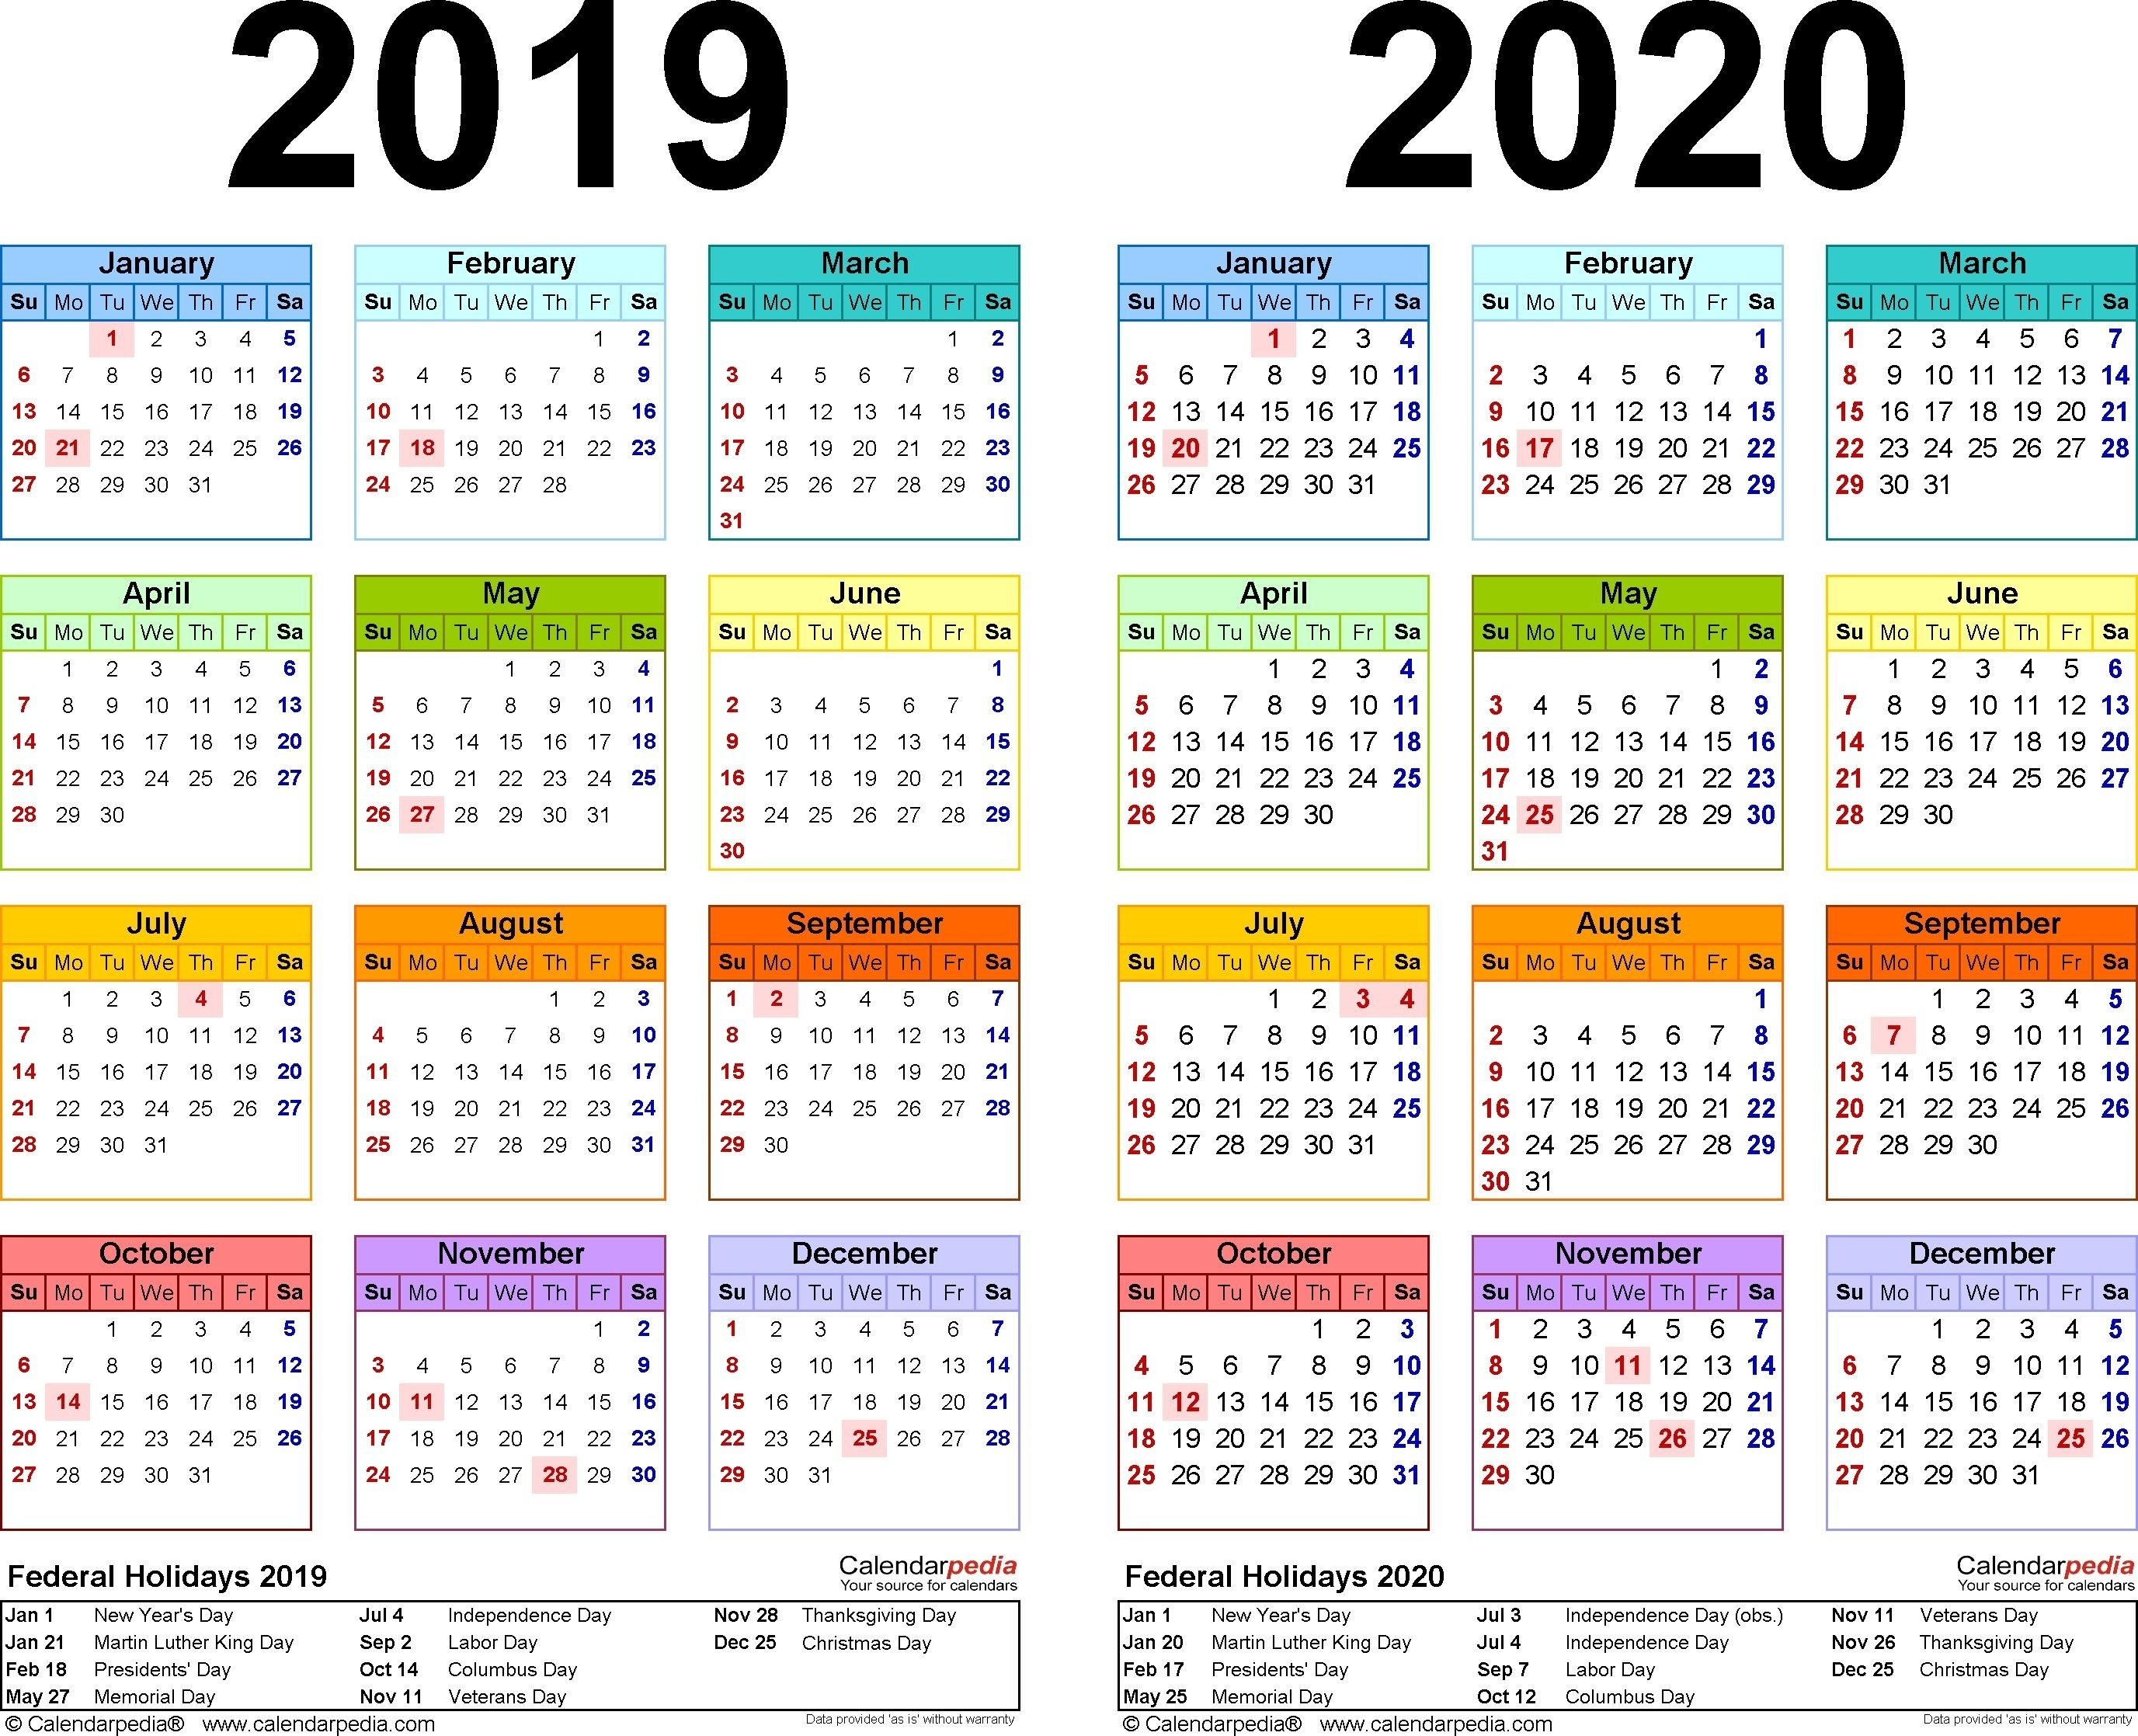 2019-2020 Calendar - Free Printable Two-Year Excel Calendars  365 Day Julian Calendar 2020